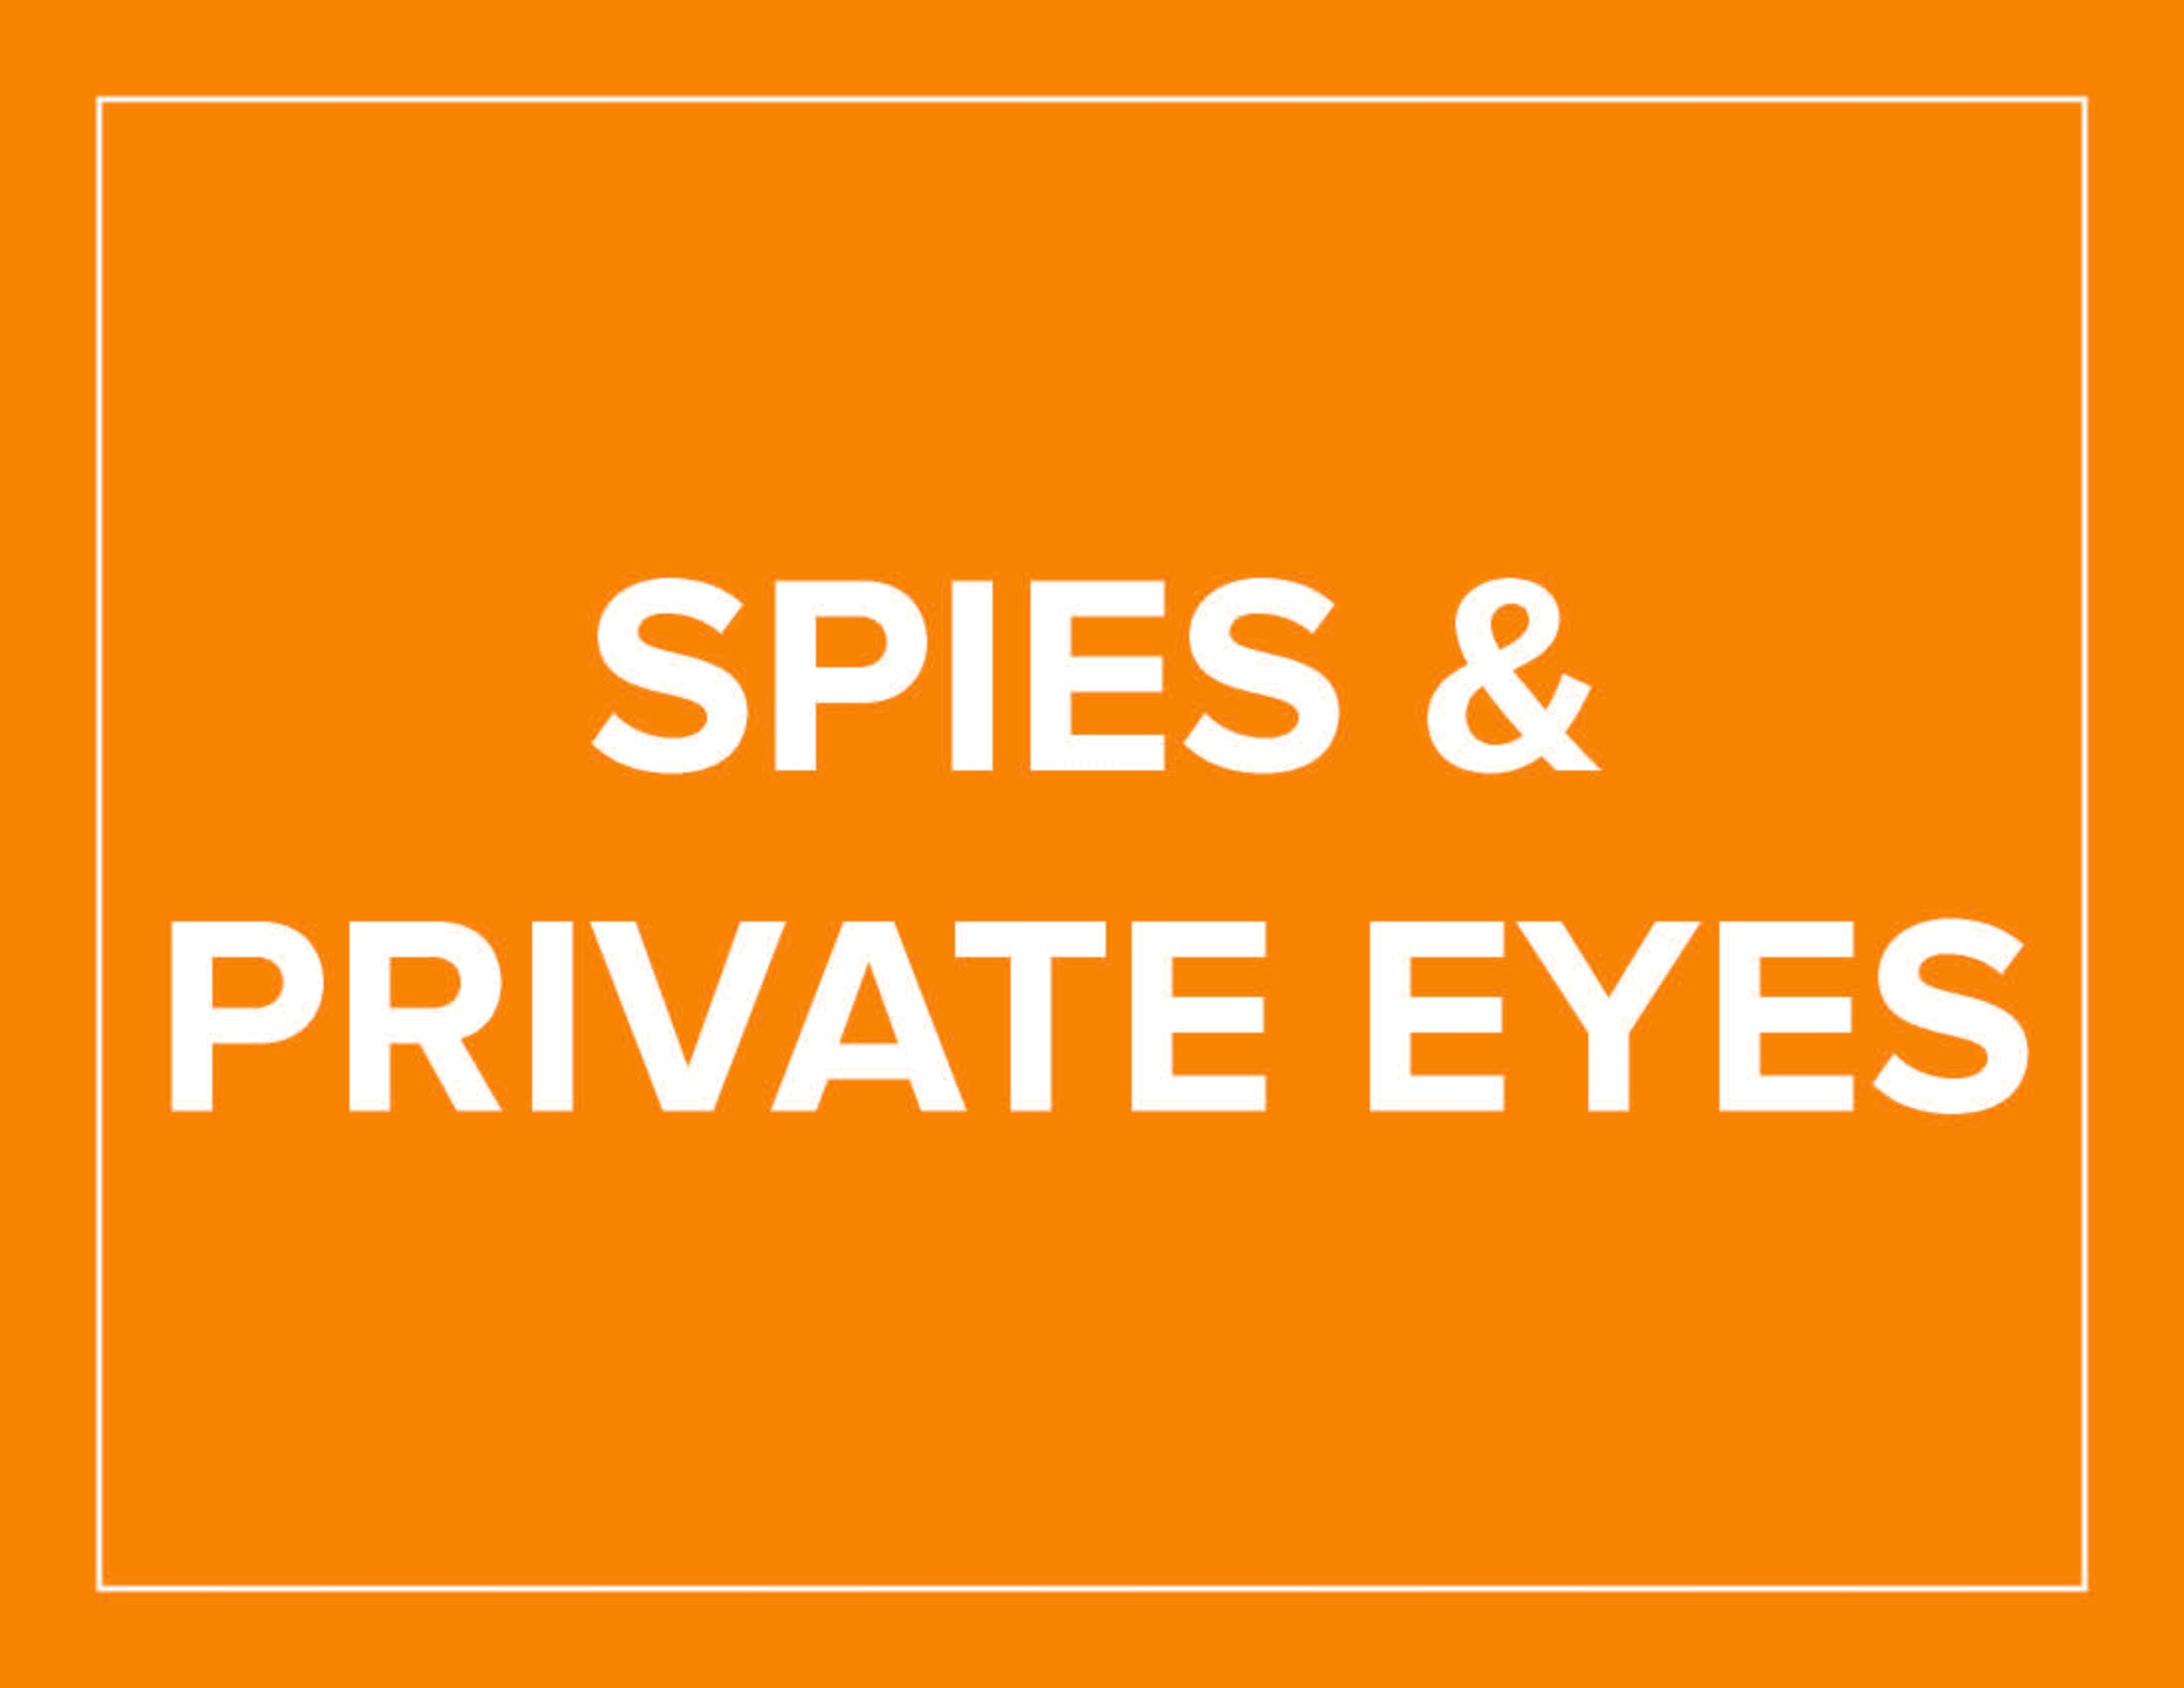 Spies and Private Eyes Aug 13-14